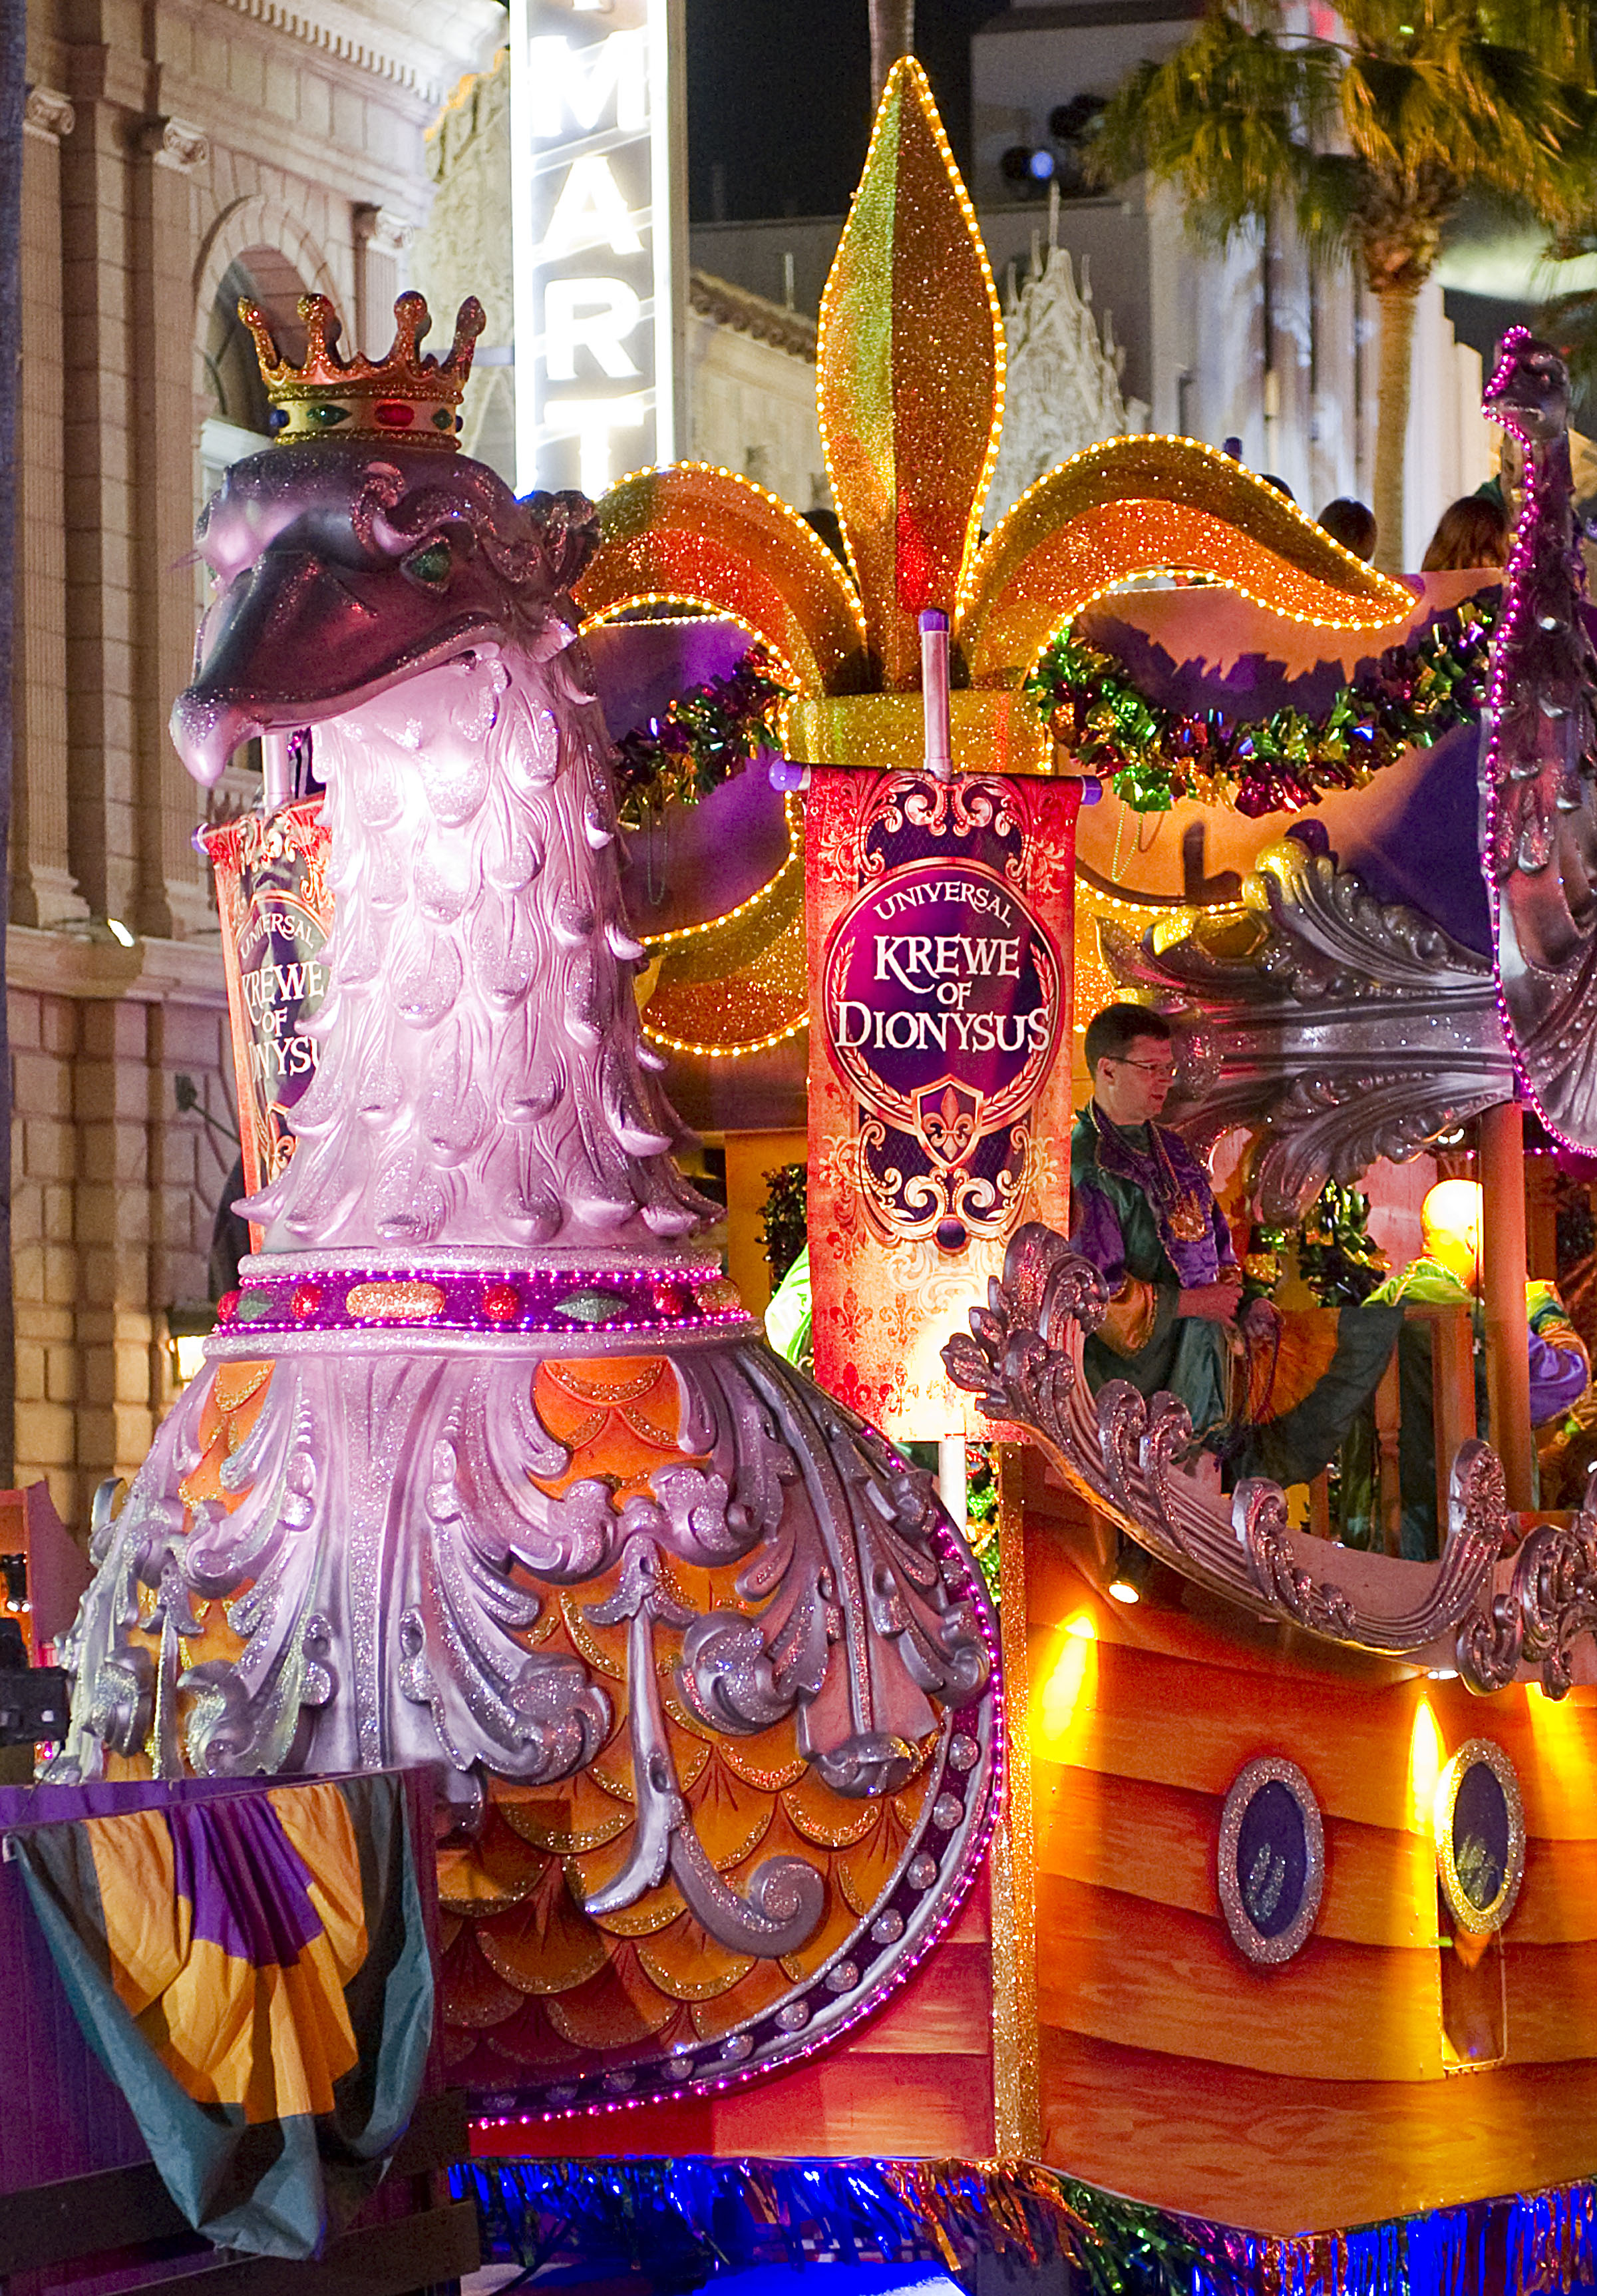 Review of Universal Orlando Resort's Mardi Gras in Florida